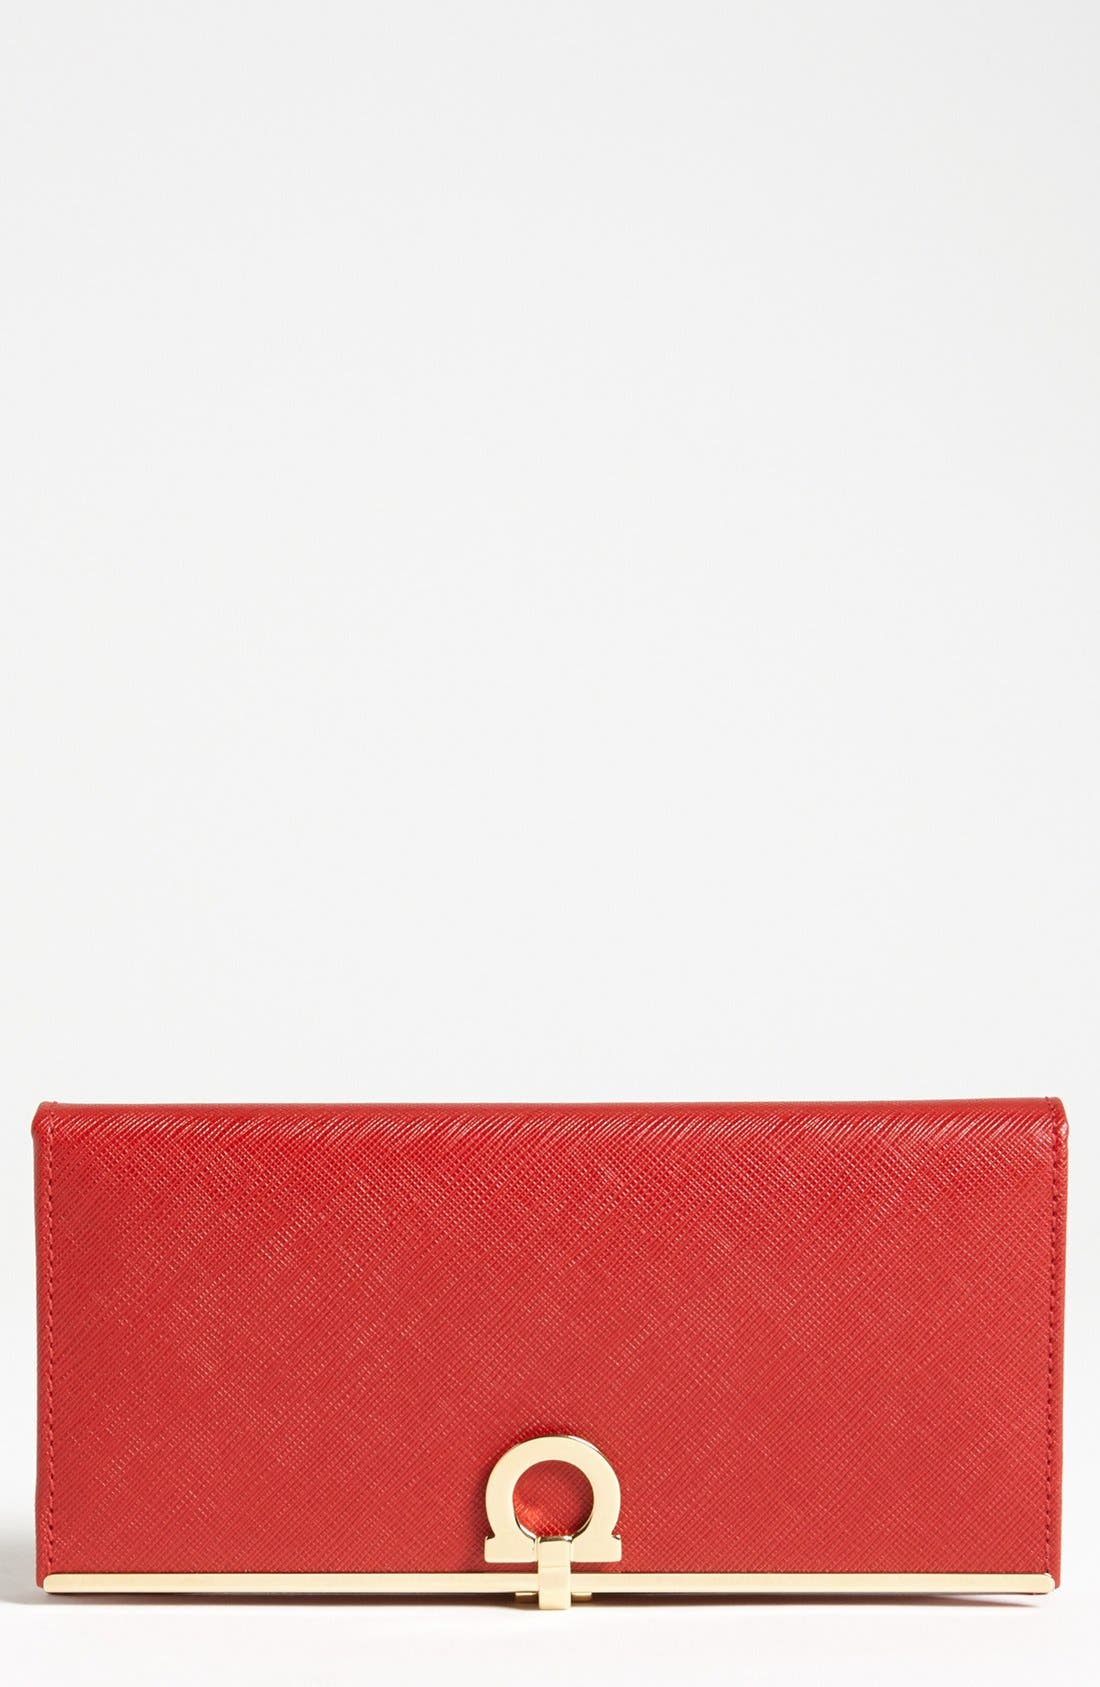 Saffiano Leather Wallet,                             Main thumbnail 1, color,                             600